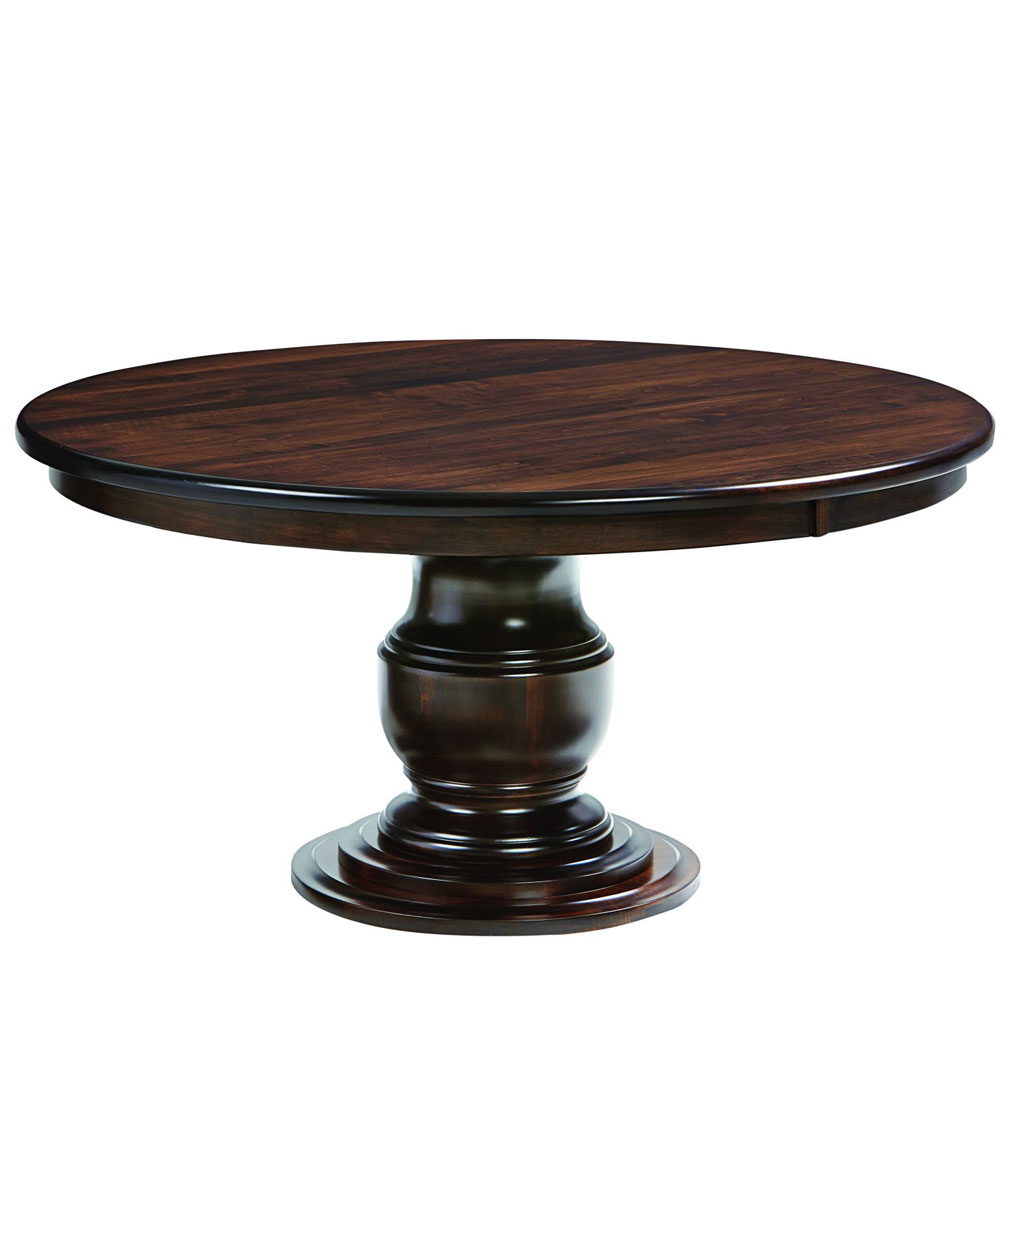 Ziglar Amish Pedestal Table